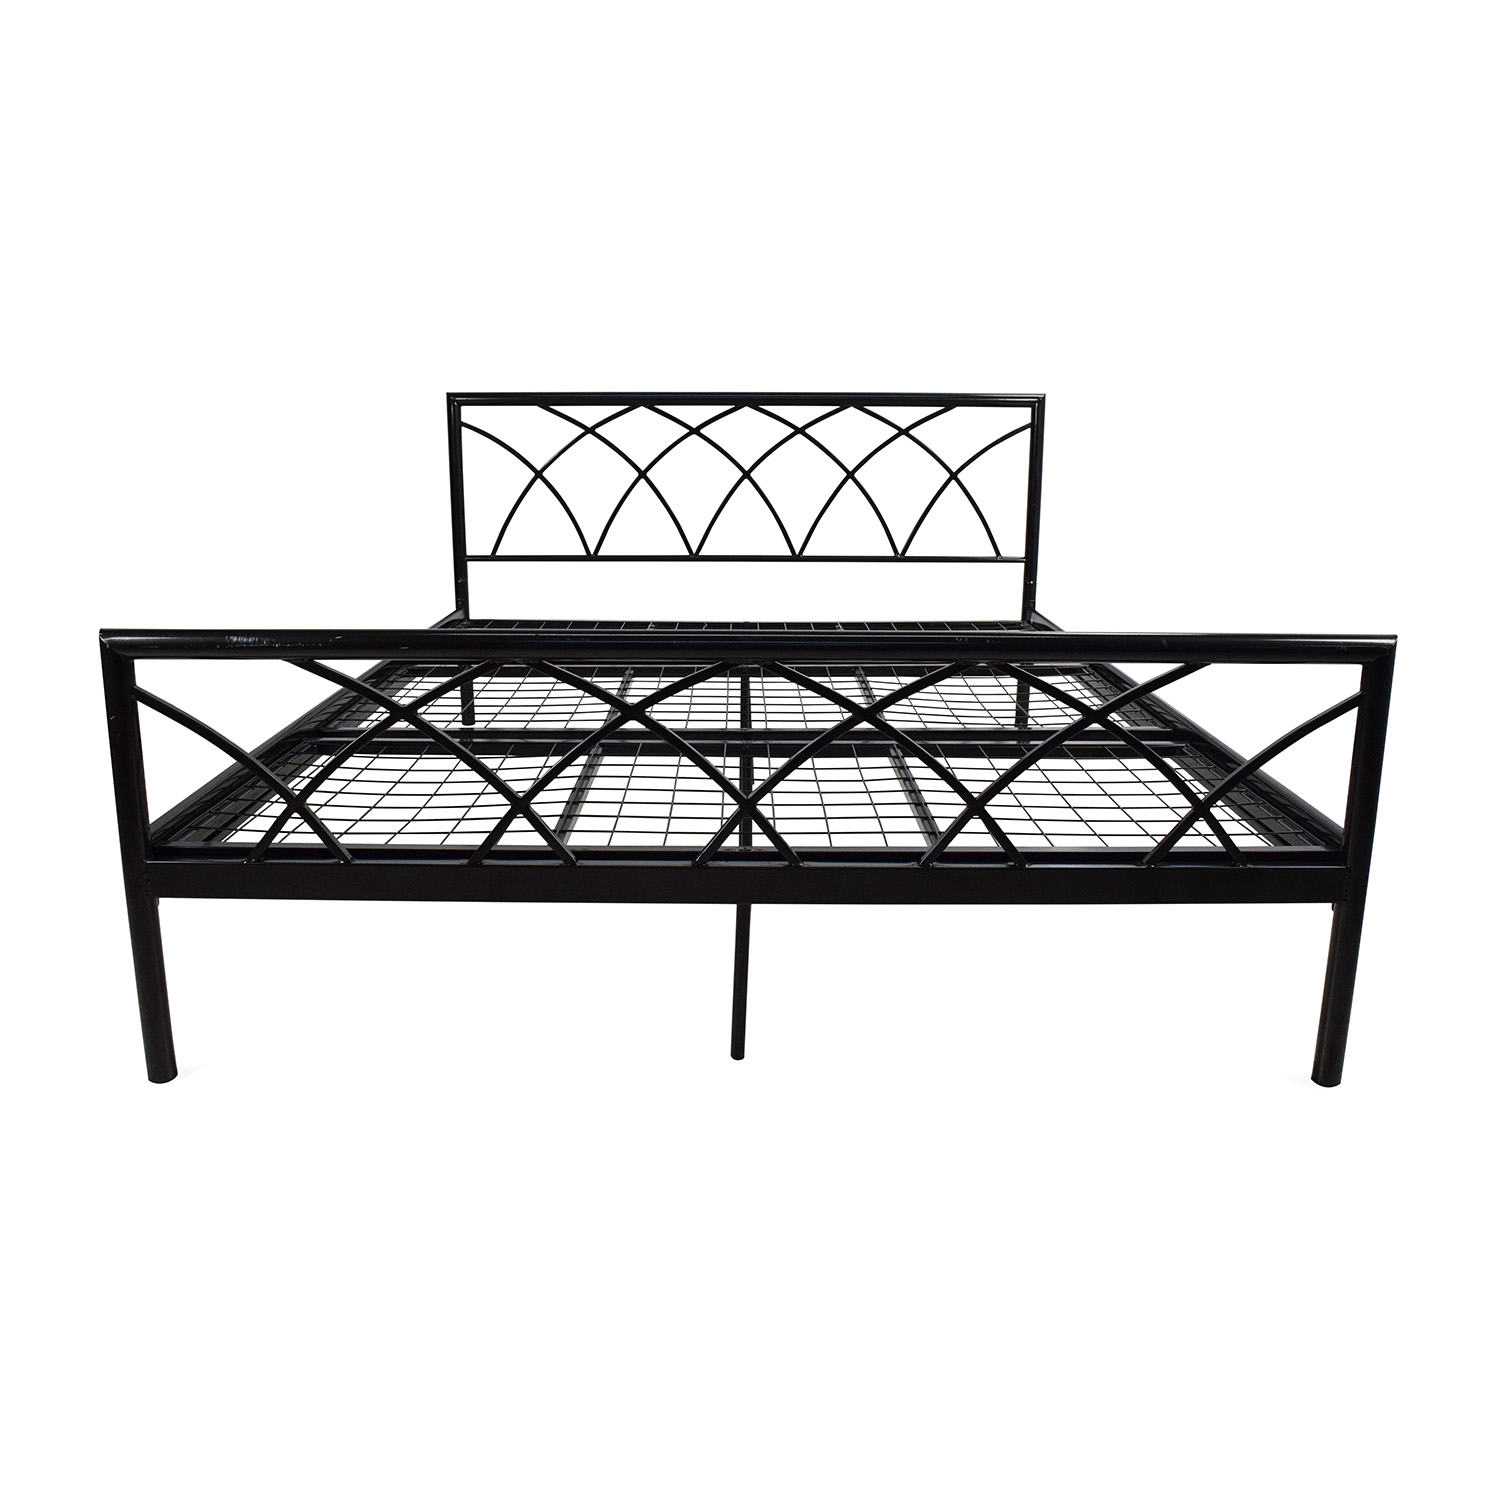 new arrival 16e79 dfed8 75% OFF - Overstock Queen Size Metal Bed Frame / Beds